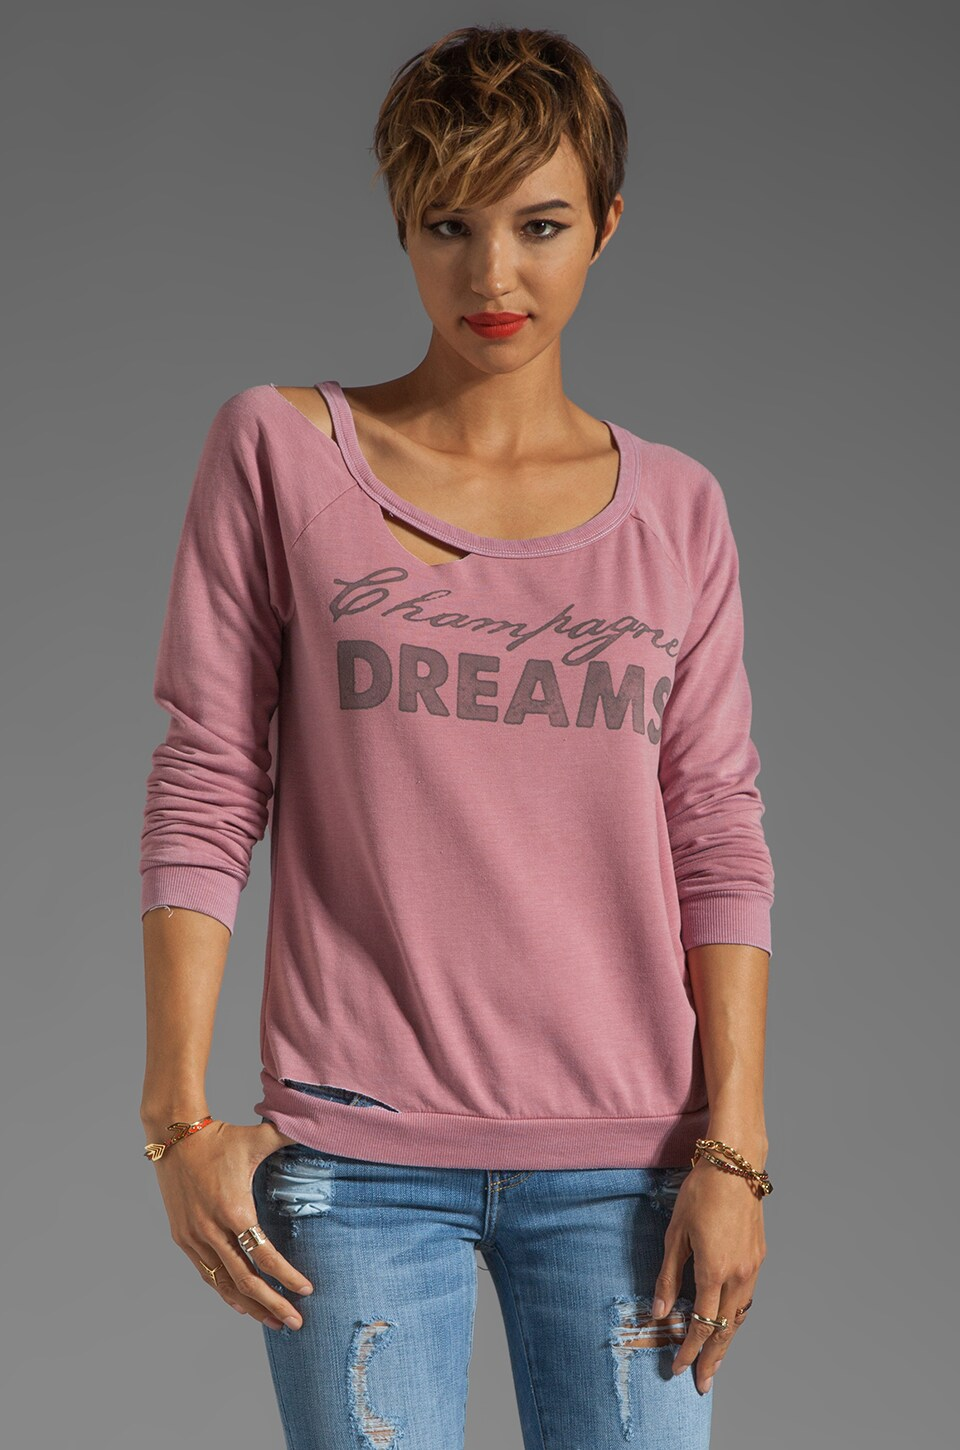 Chaser Champagne Dreams Deconstructed Raglan in Dark Rose